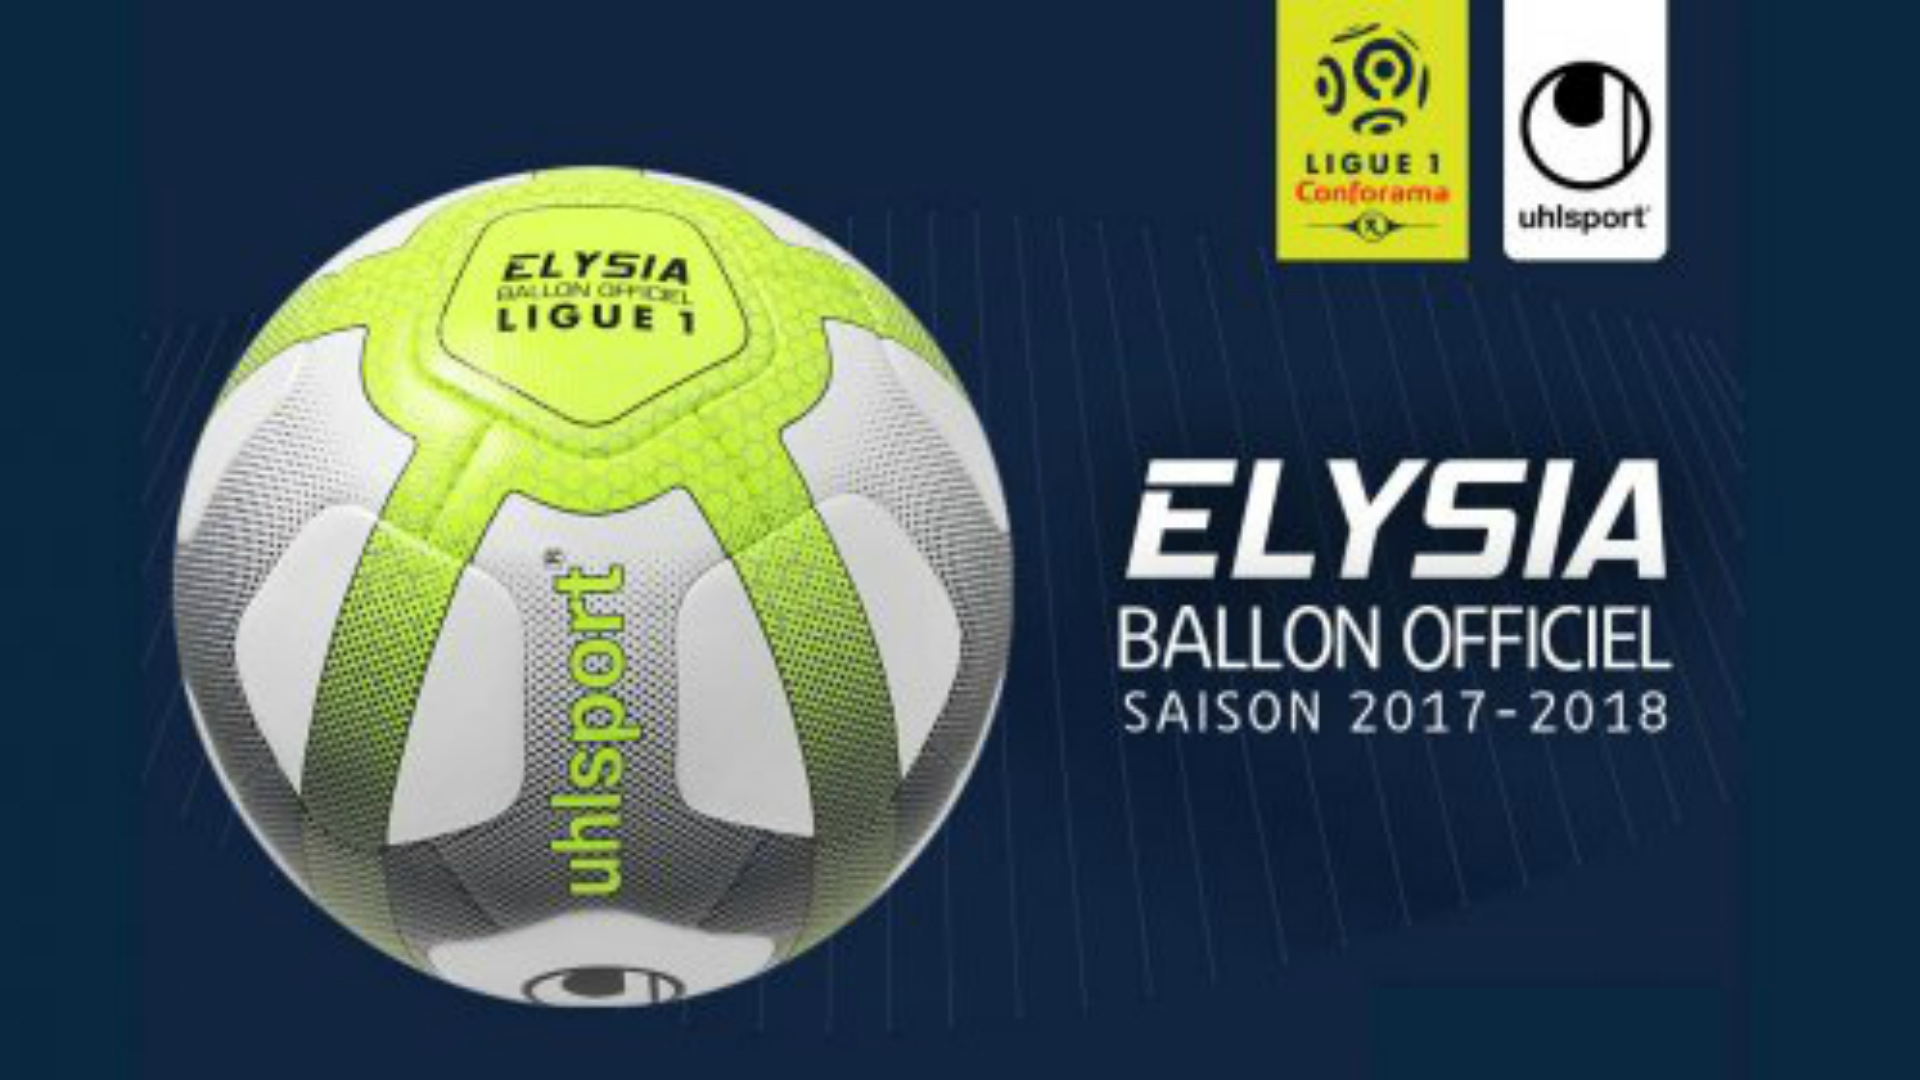 Ligue 1 Elysia matchaball